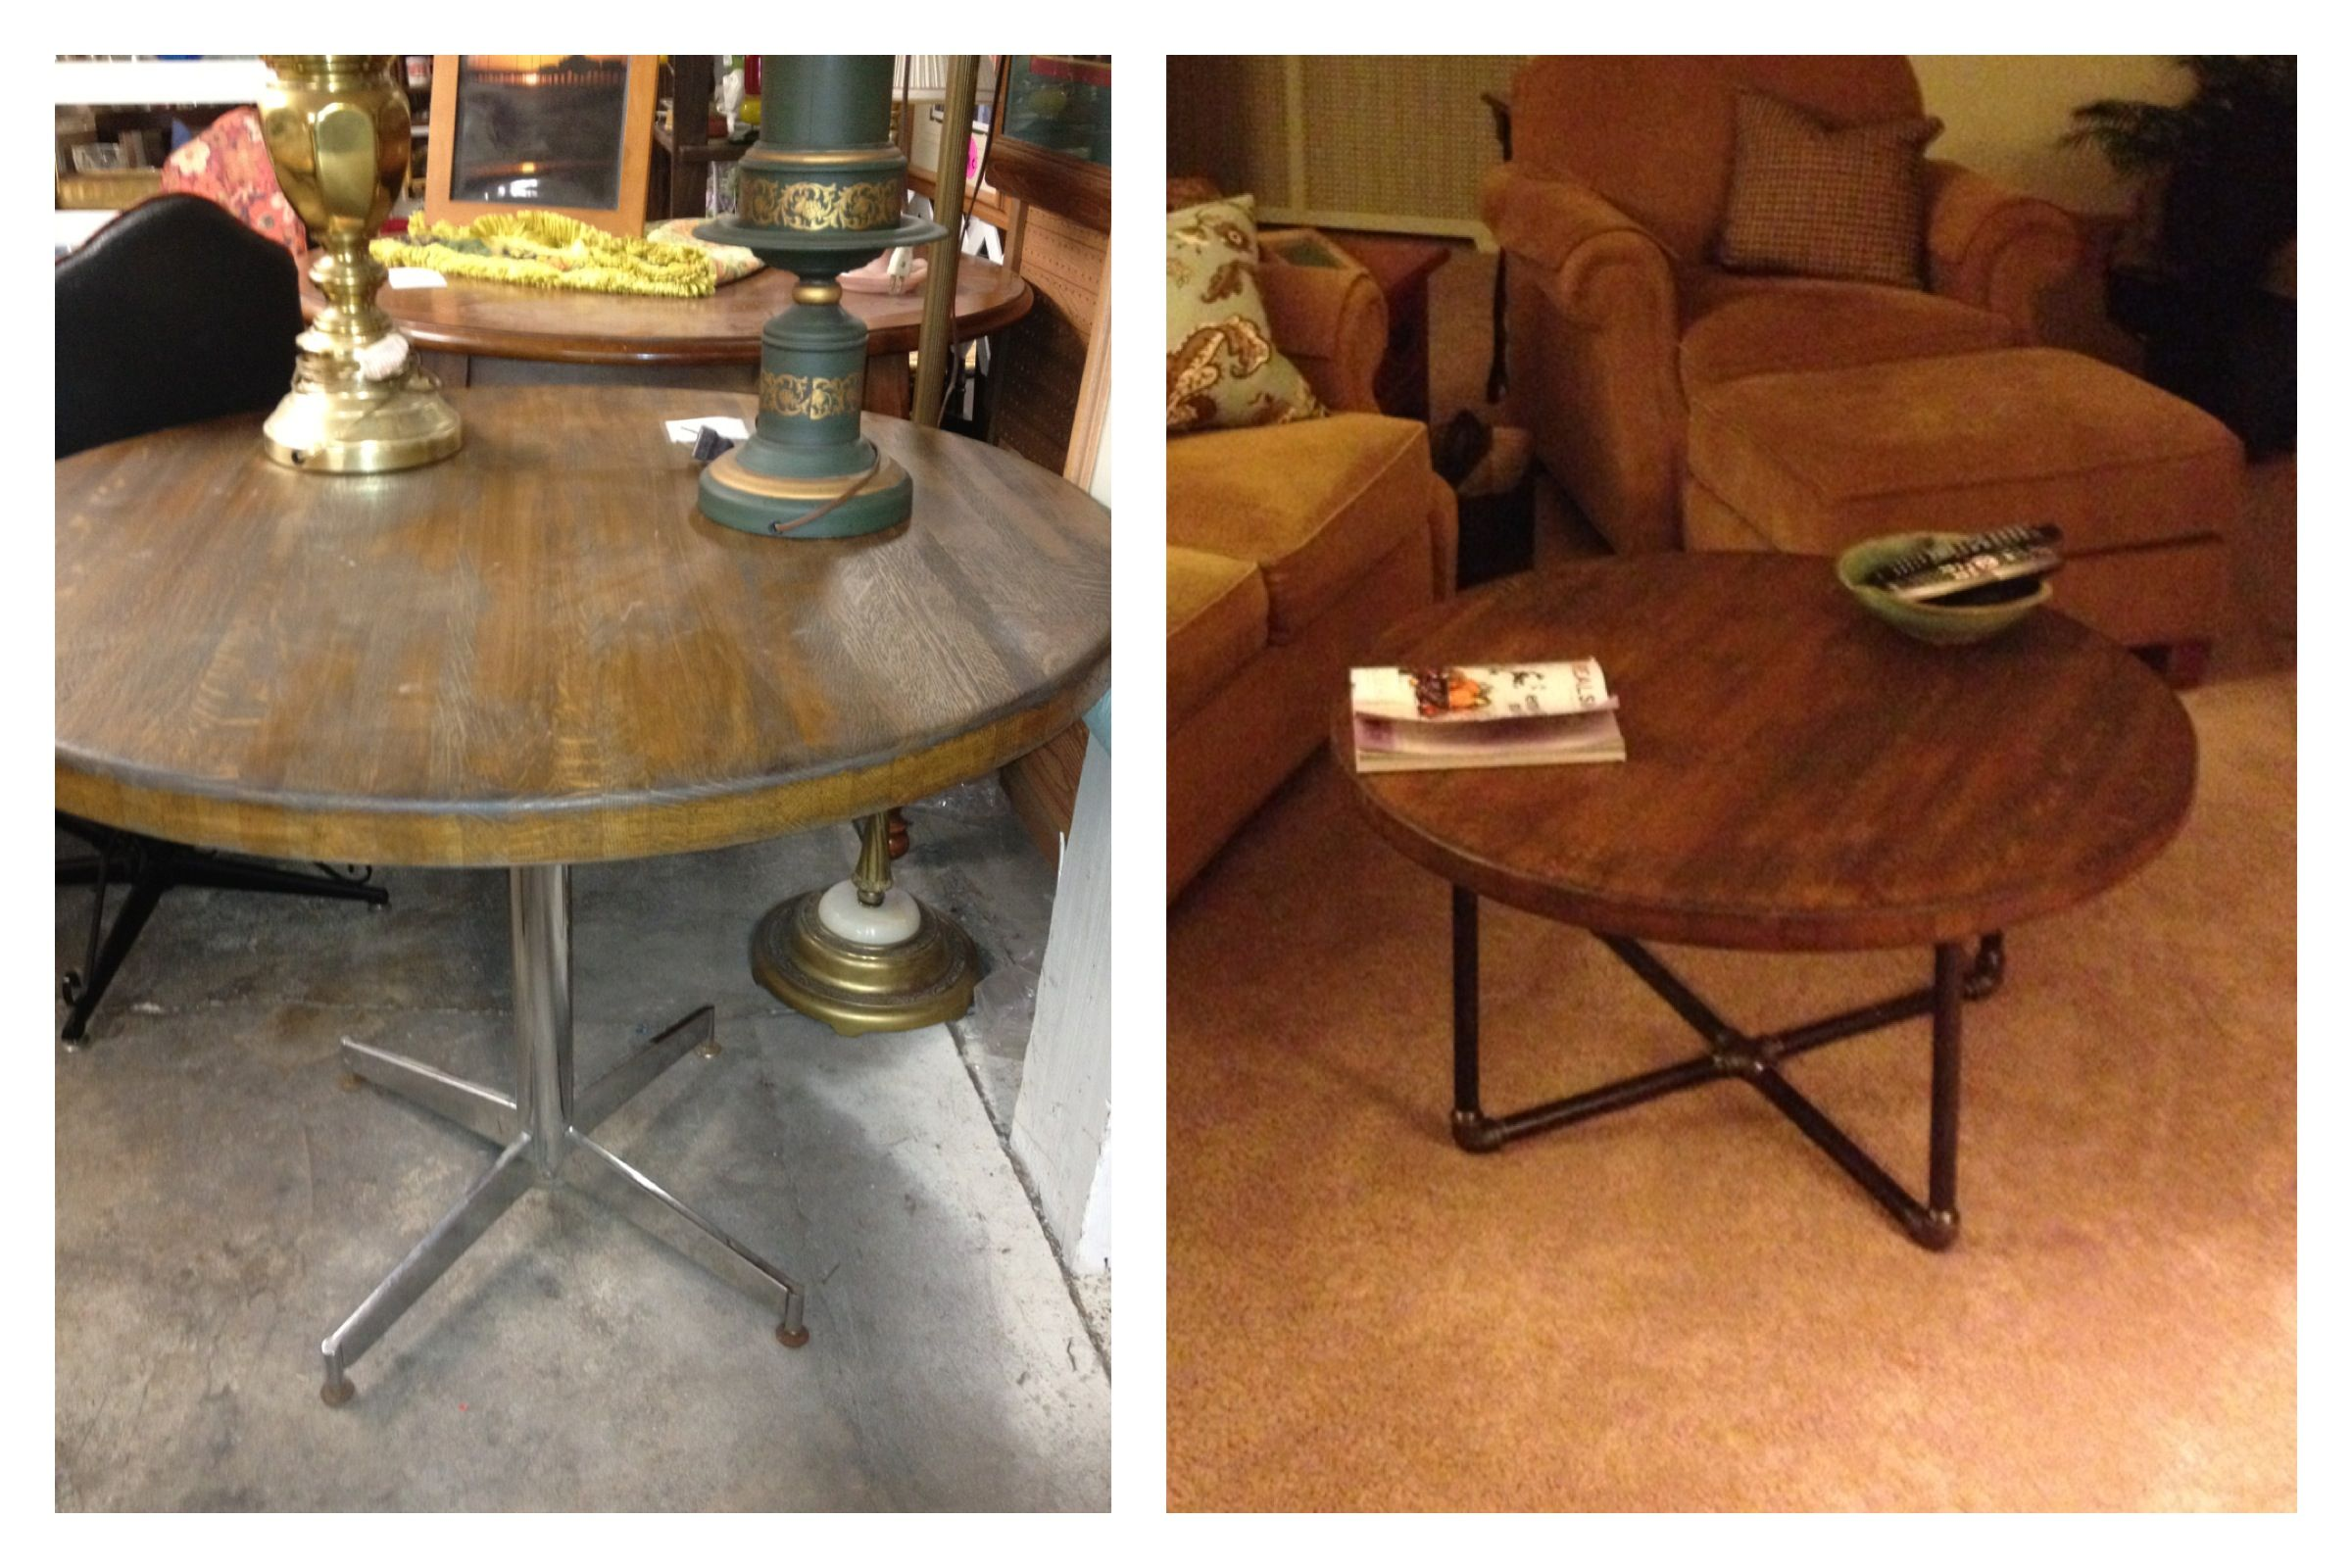 Buy Butcher Block Table Top: Round Butcher Block Table Top (antique Store Find) And